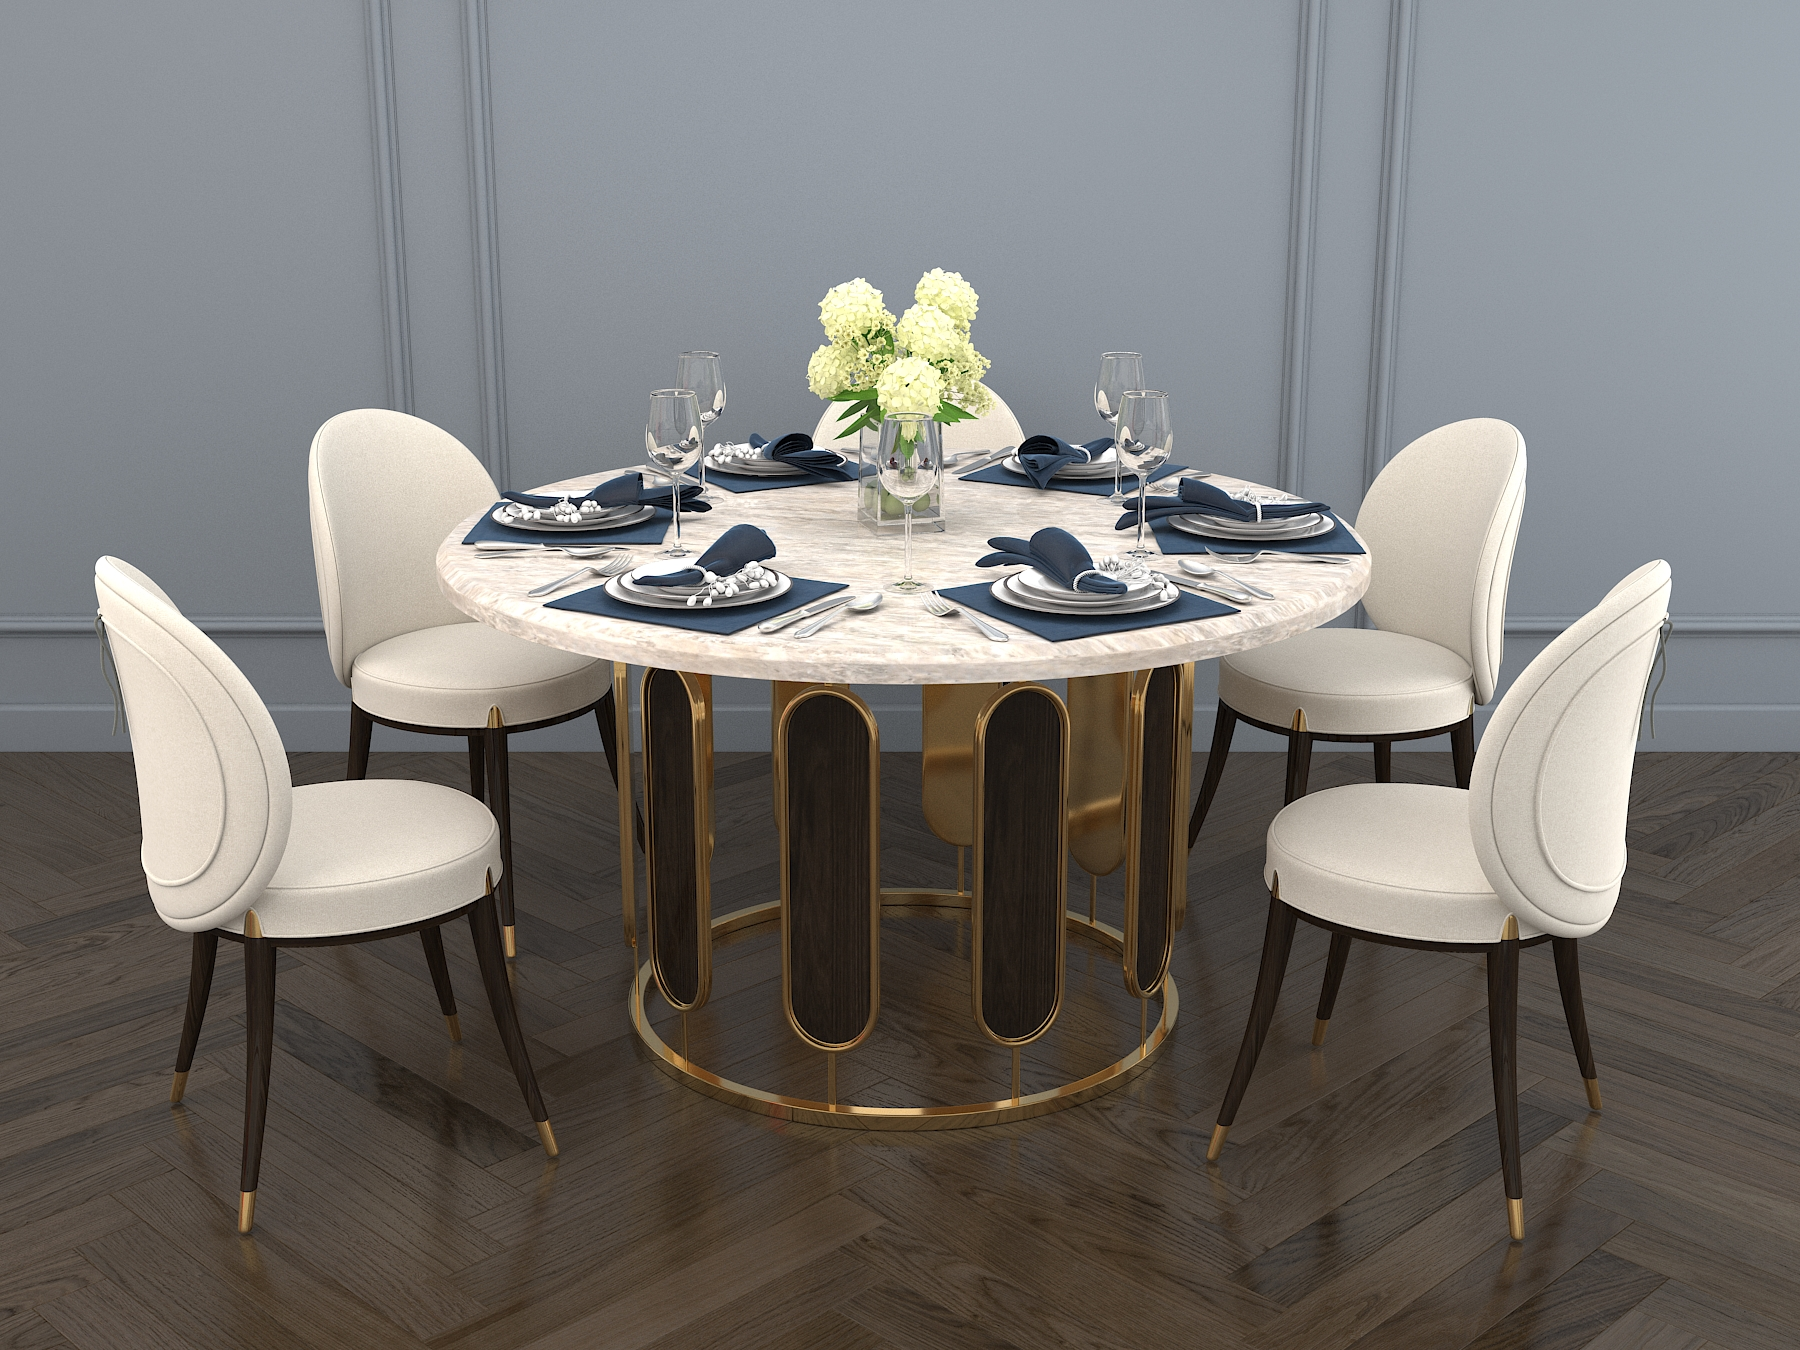 Modern Dining Table And Chair By Nhattuankts 3docean